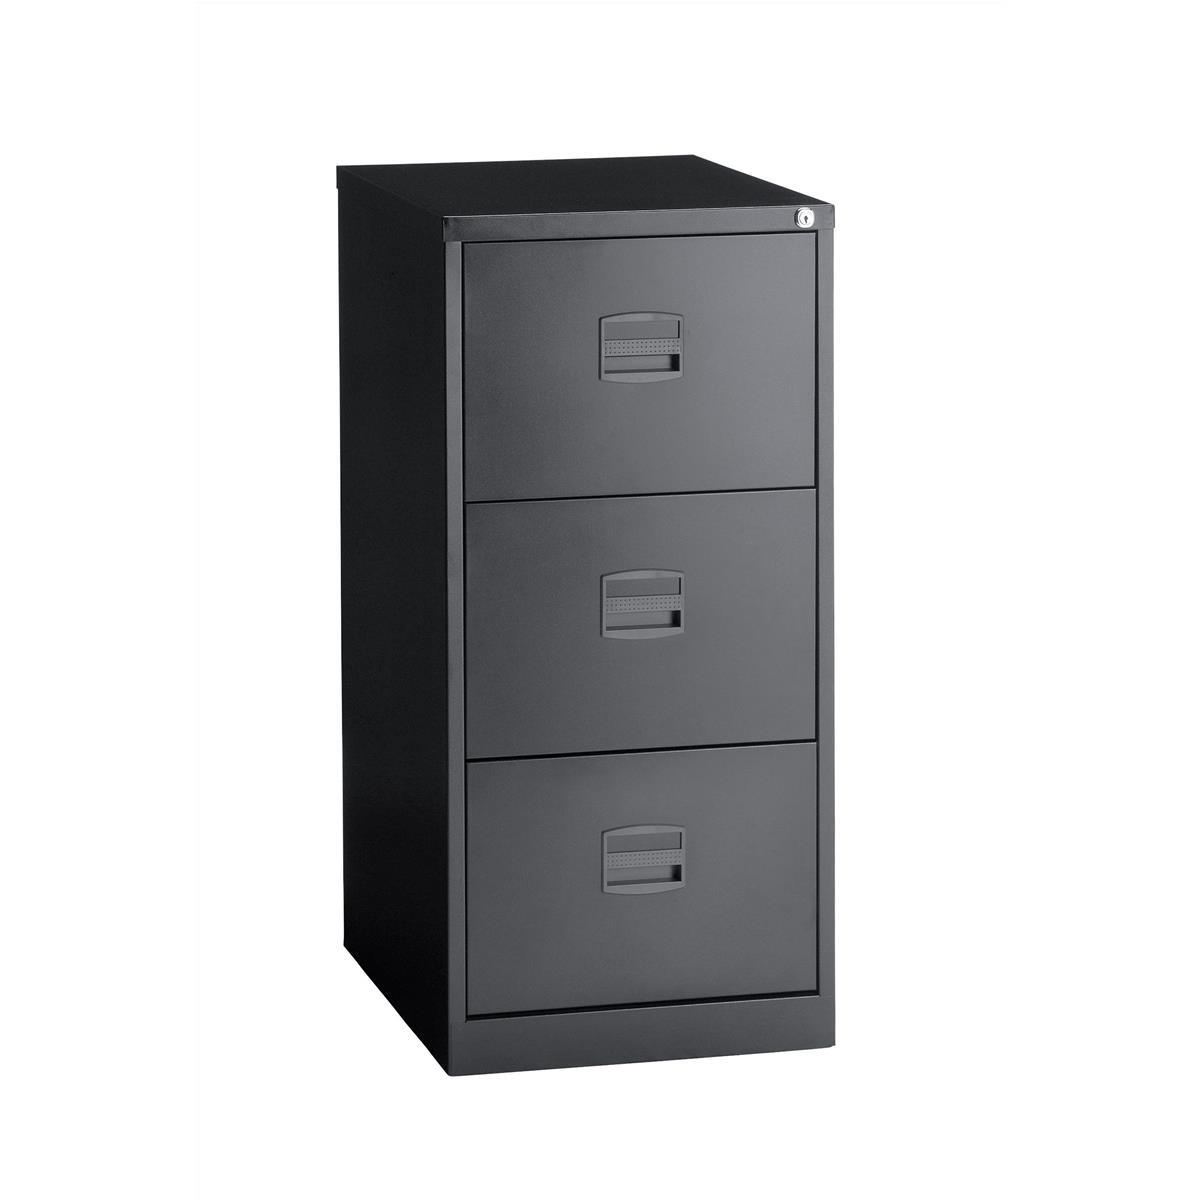 Trexus 3 Drawer Filing Cabinet 470x622x1016mm Ref 632694